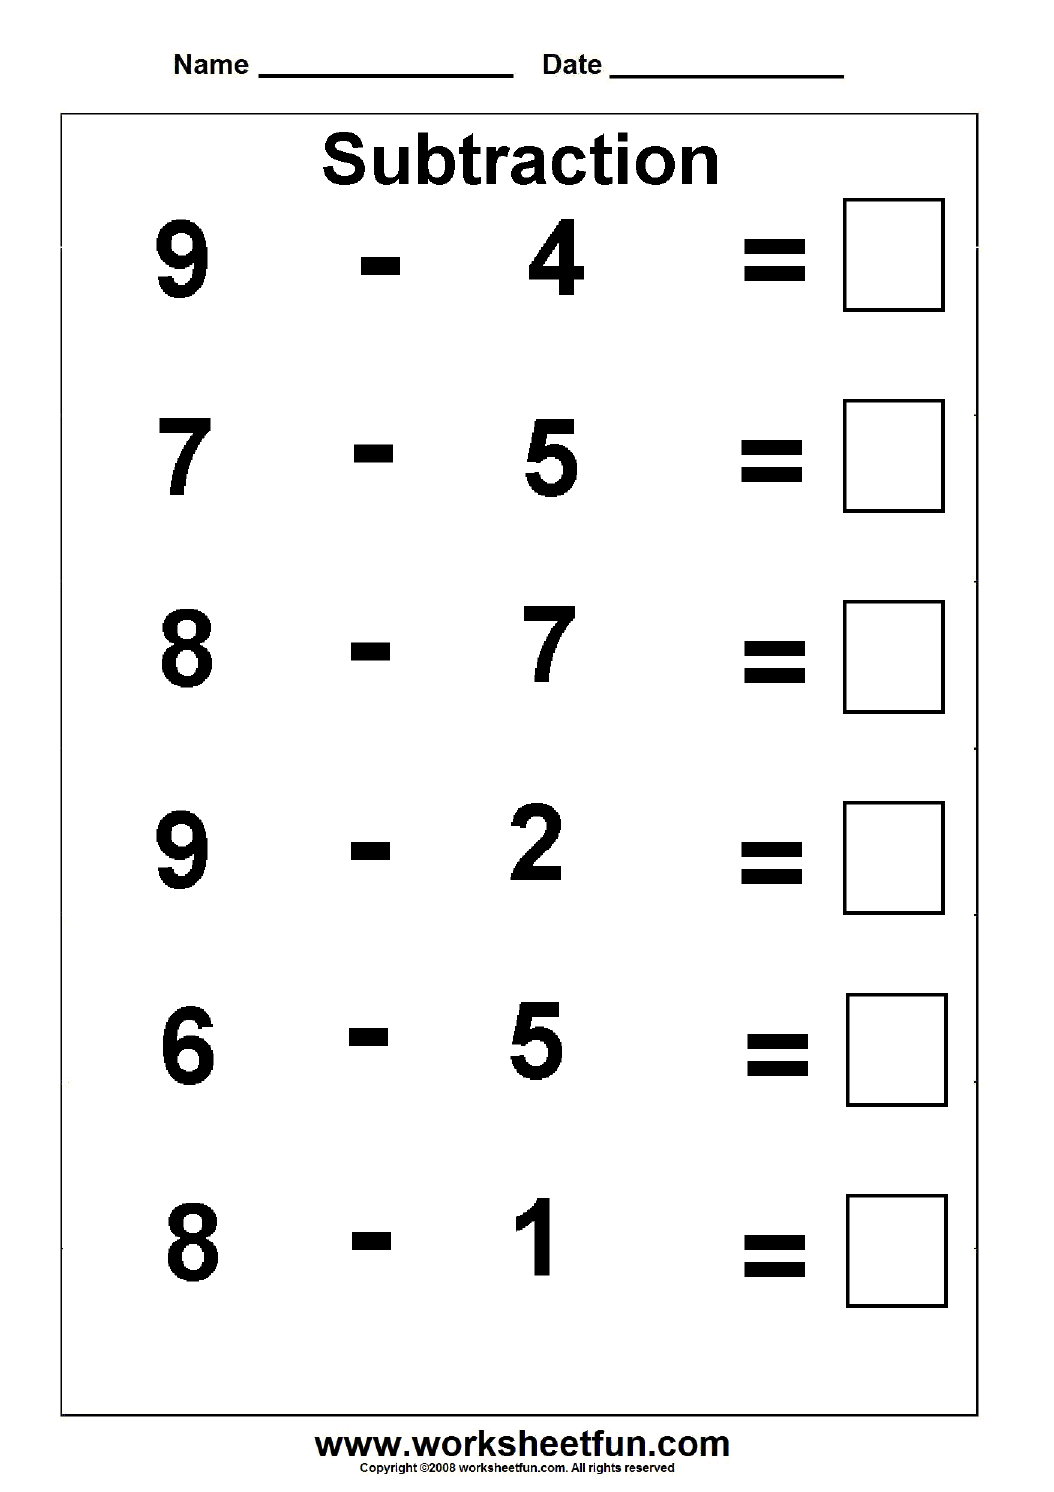 Kindergarten Subtraction Worksheets Davezan – Subtraction Worksheet Kindergarten